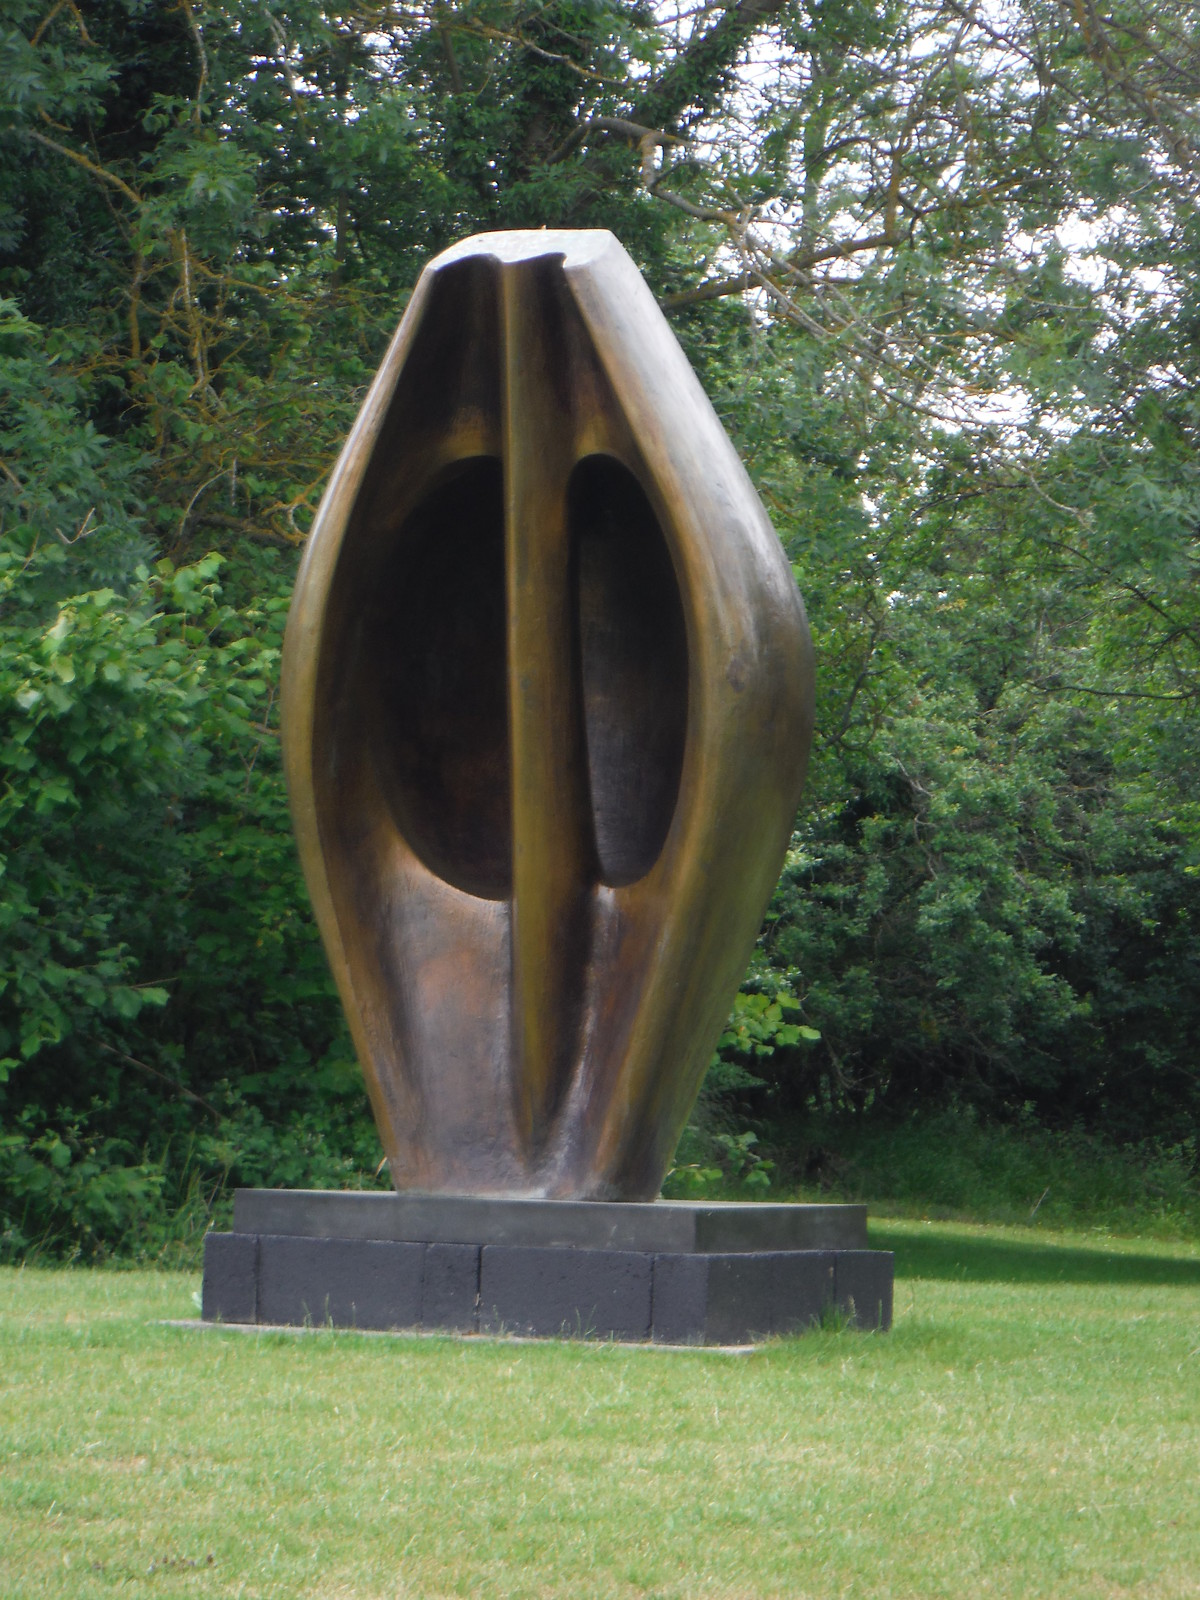 Some Henry Moore Sculpture, visible from the Public Footpath SWC Walk 210 - Sawbridgeworth to Bishop's Stortfort (via Henry Moore Foundation)